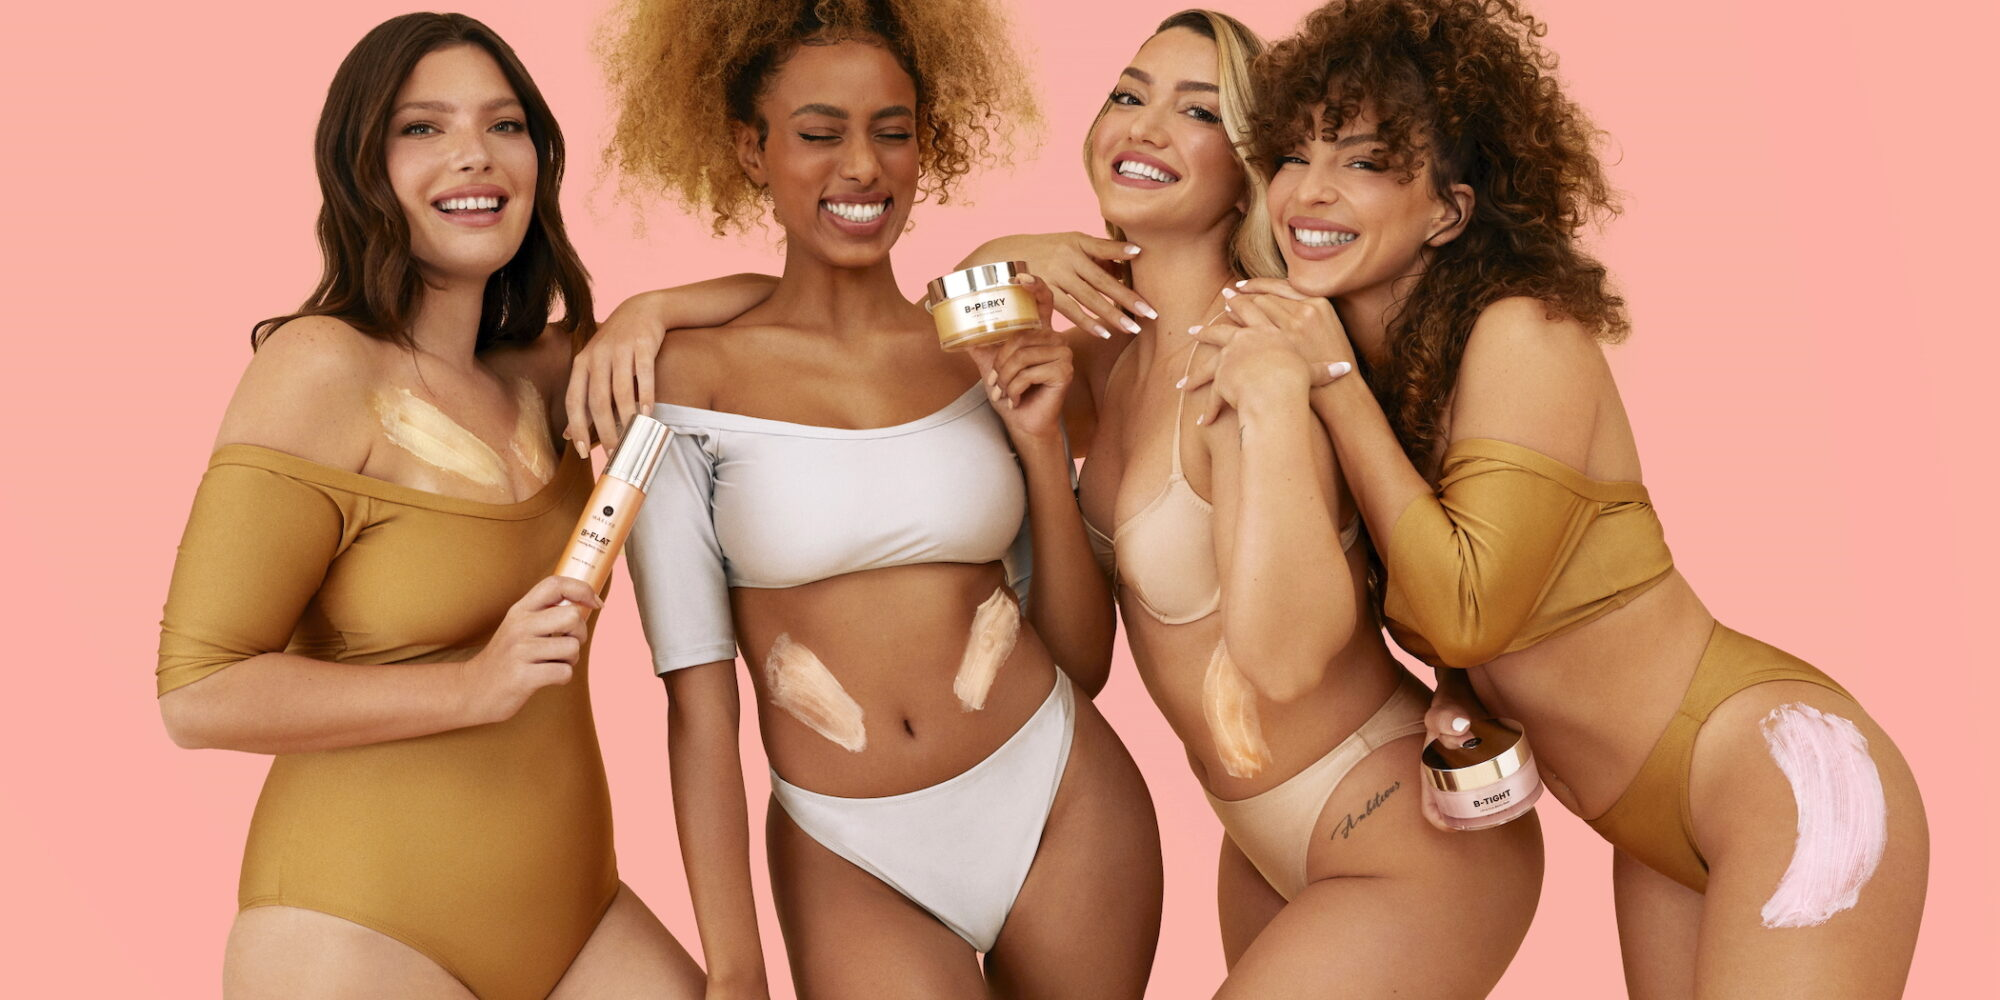 DTC Body Care Brand Maëlys Secures Minority Investment From Madison Reed Backer Norwest